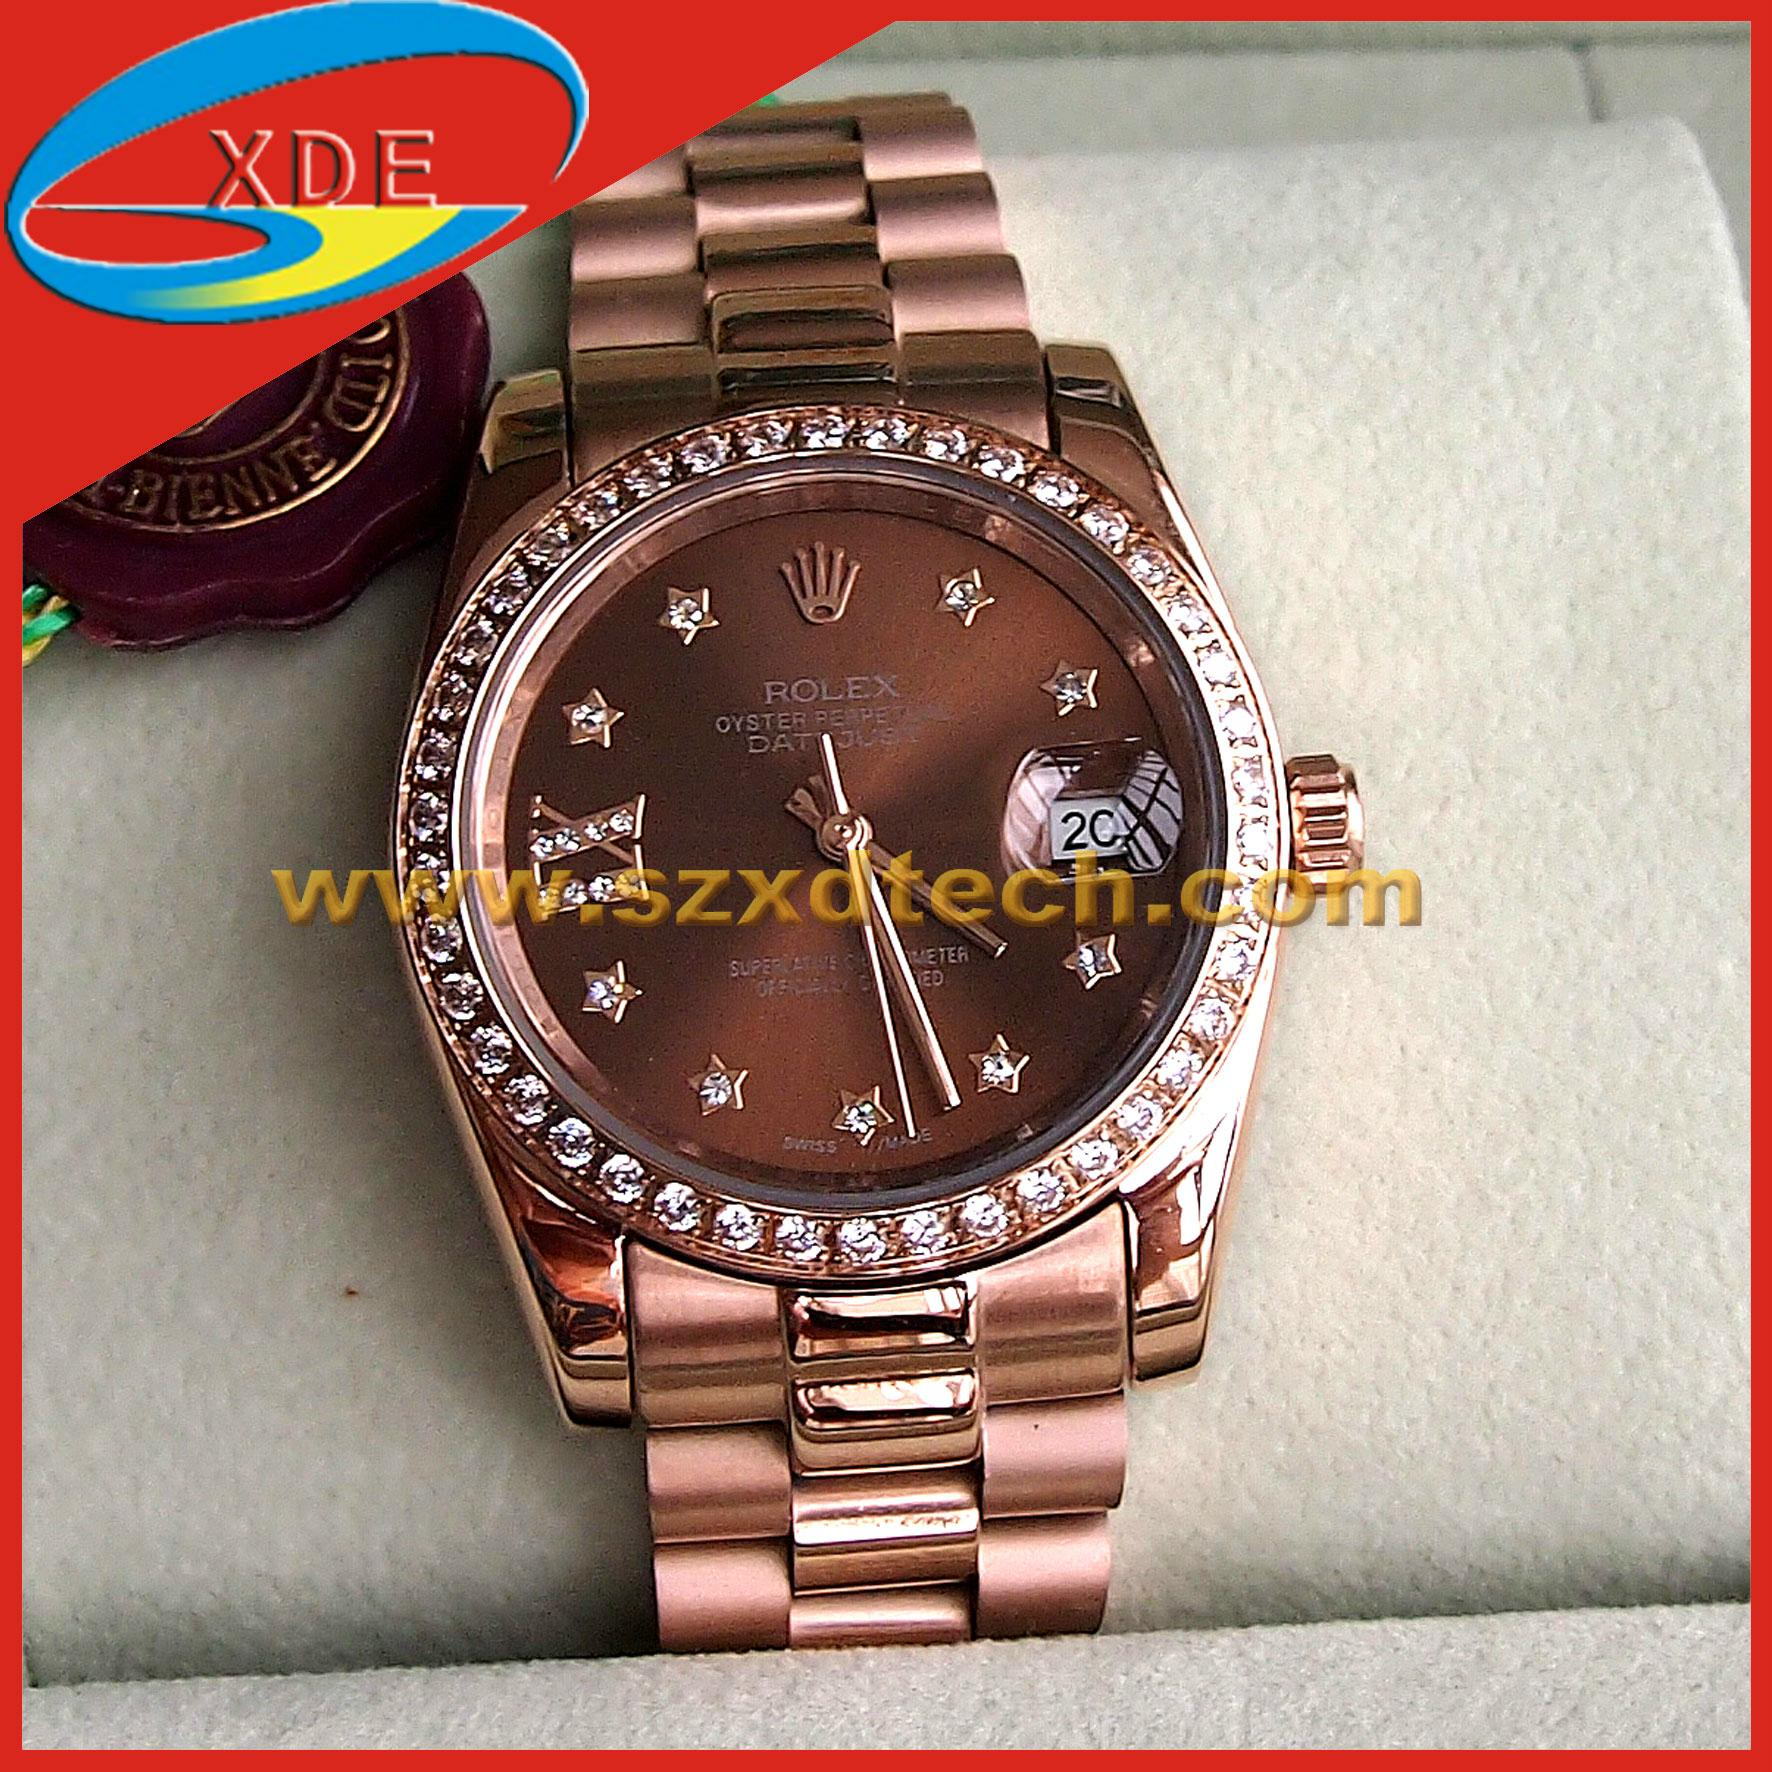 Rolex Wrist Clone Diamond Oyster Perpetual Style Watches 1